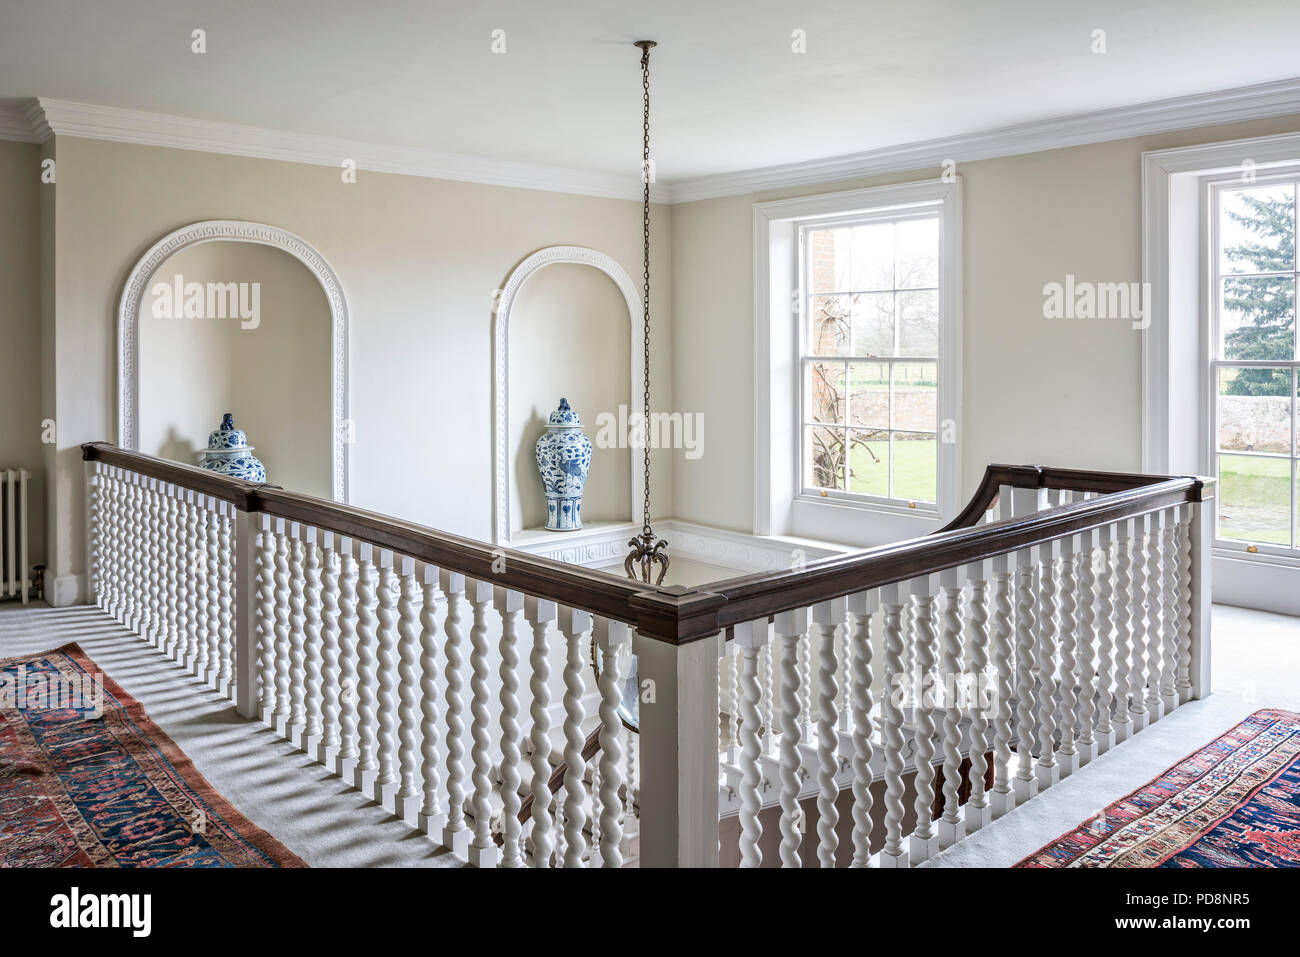 Wooden handrail in classic wide staircase - Stock Image